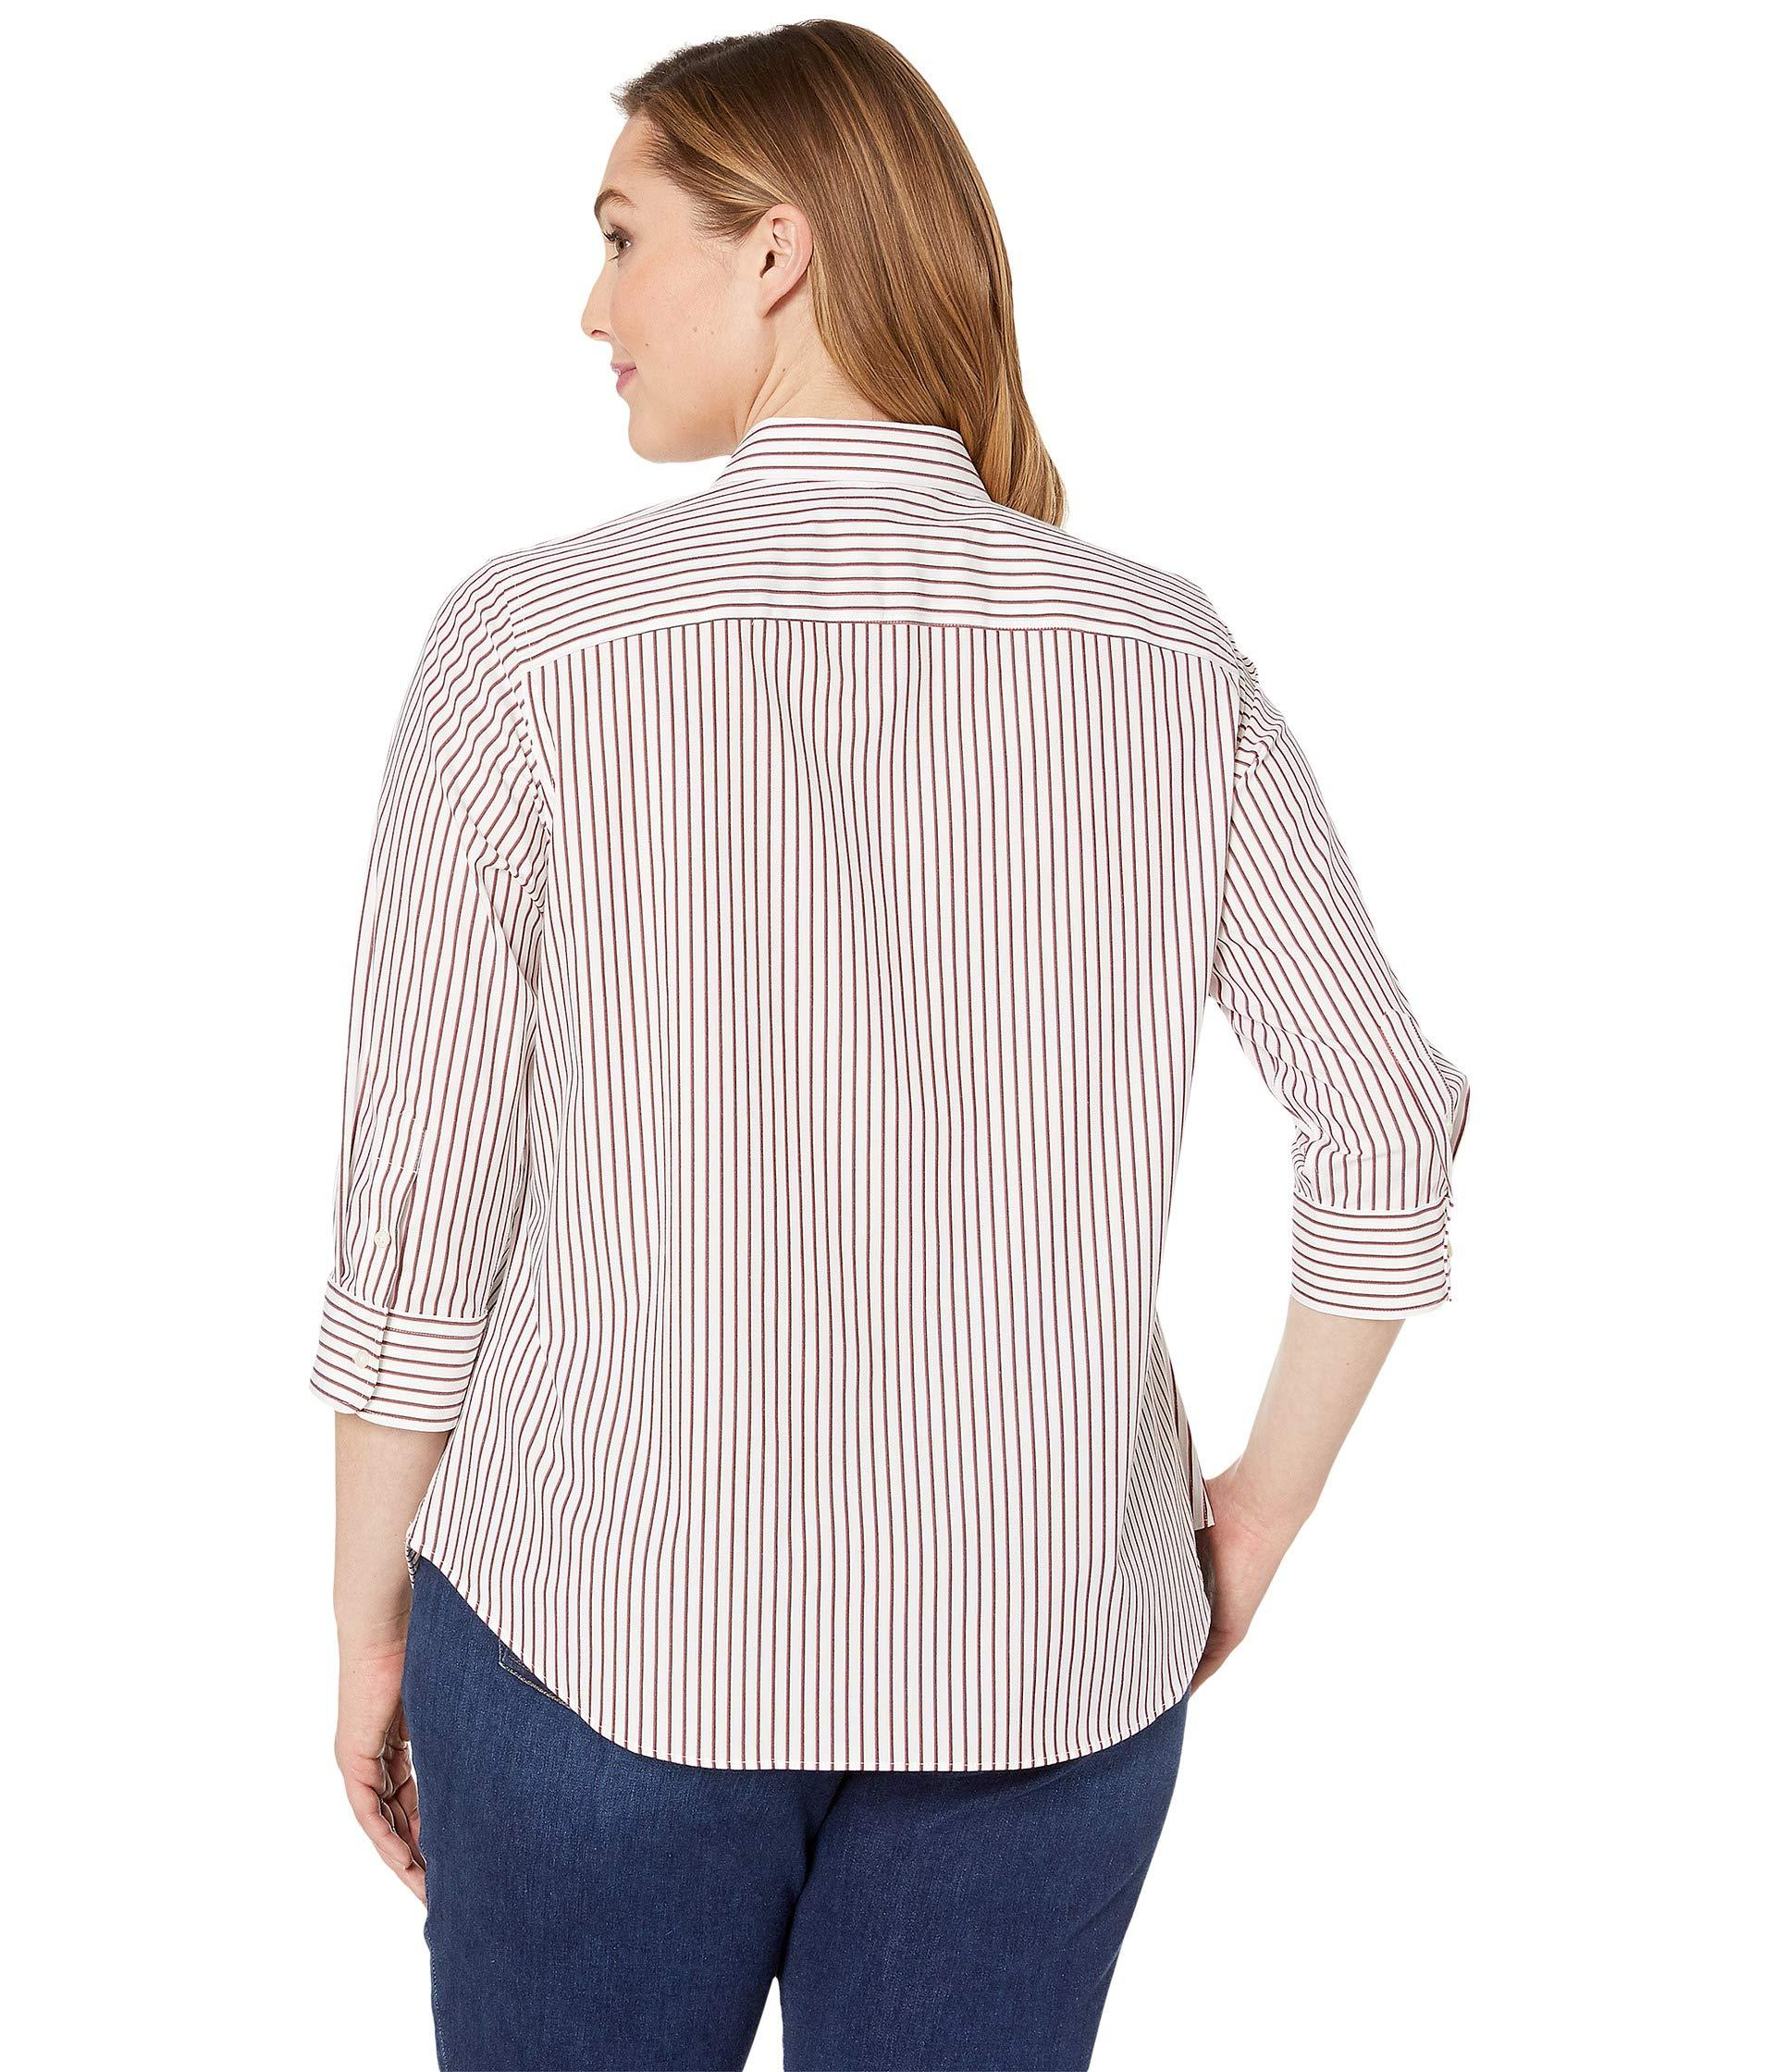 1b9d6b6e5 Lauren by Ralph Lauren Plus Size No-iron Striped Button Down Shirt ...